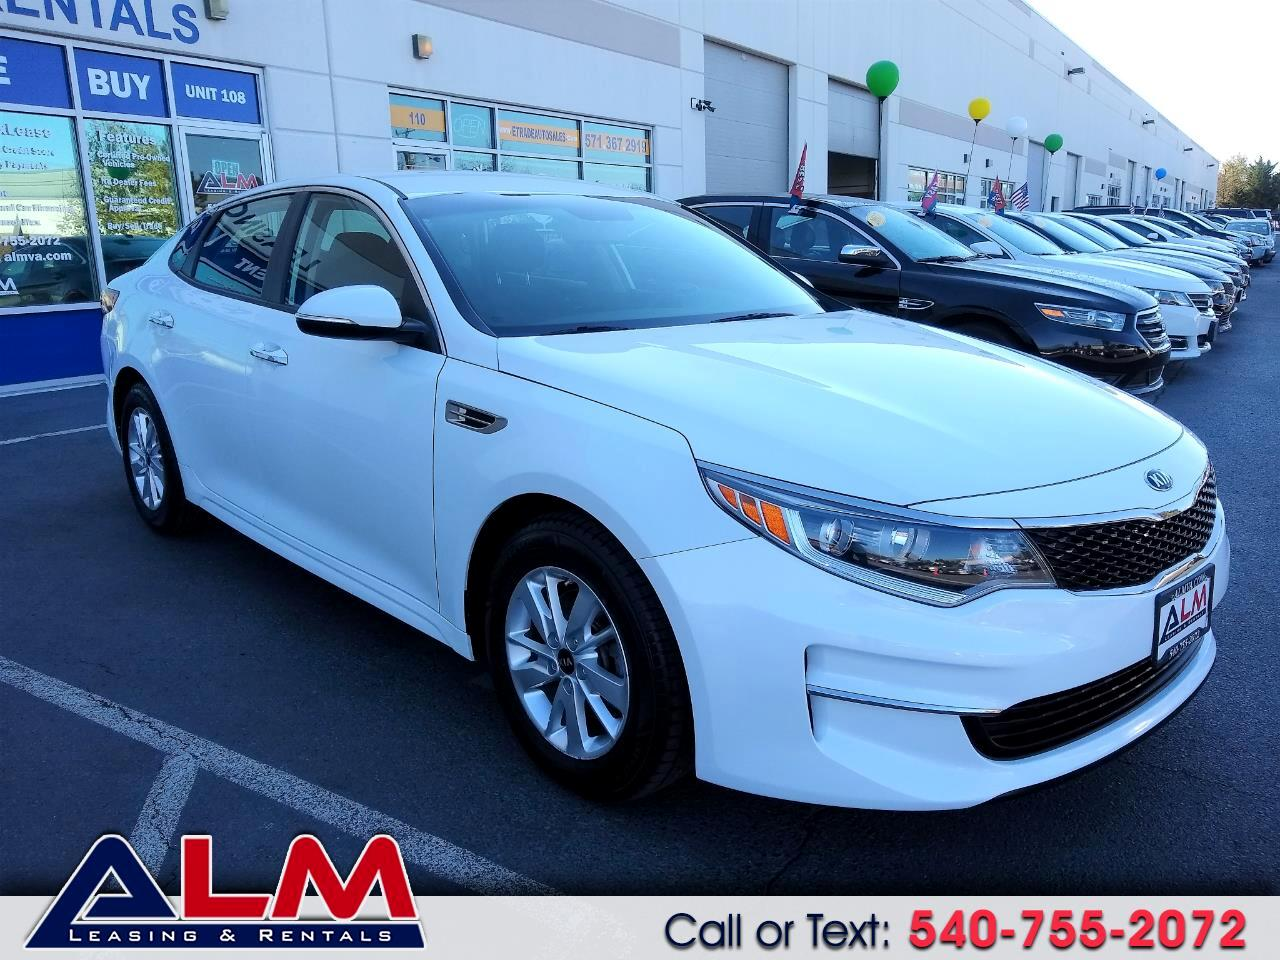 buy here pay here 2016 kia optima 4dr sdn lx for sale in chantilly va 20152 alm leasing rentals. Black Bedroom Furniture Sets. Home Design Ideas